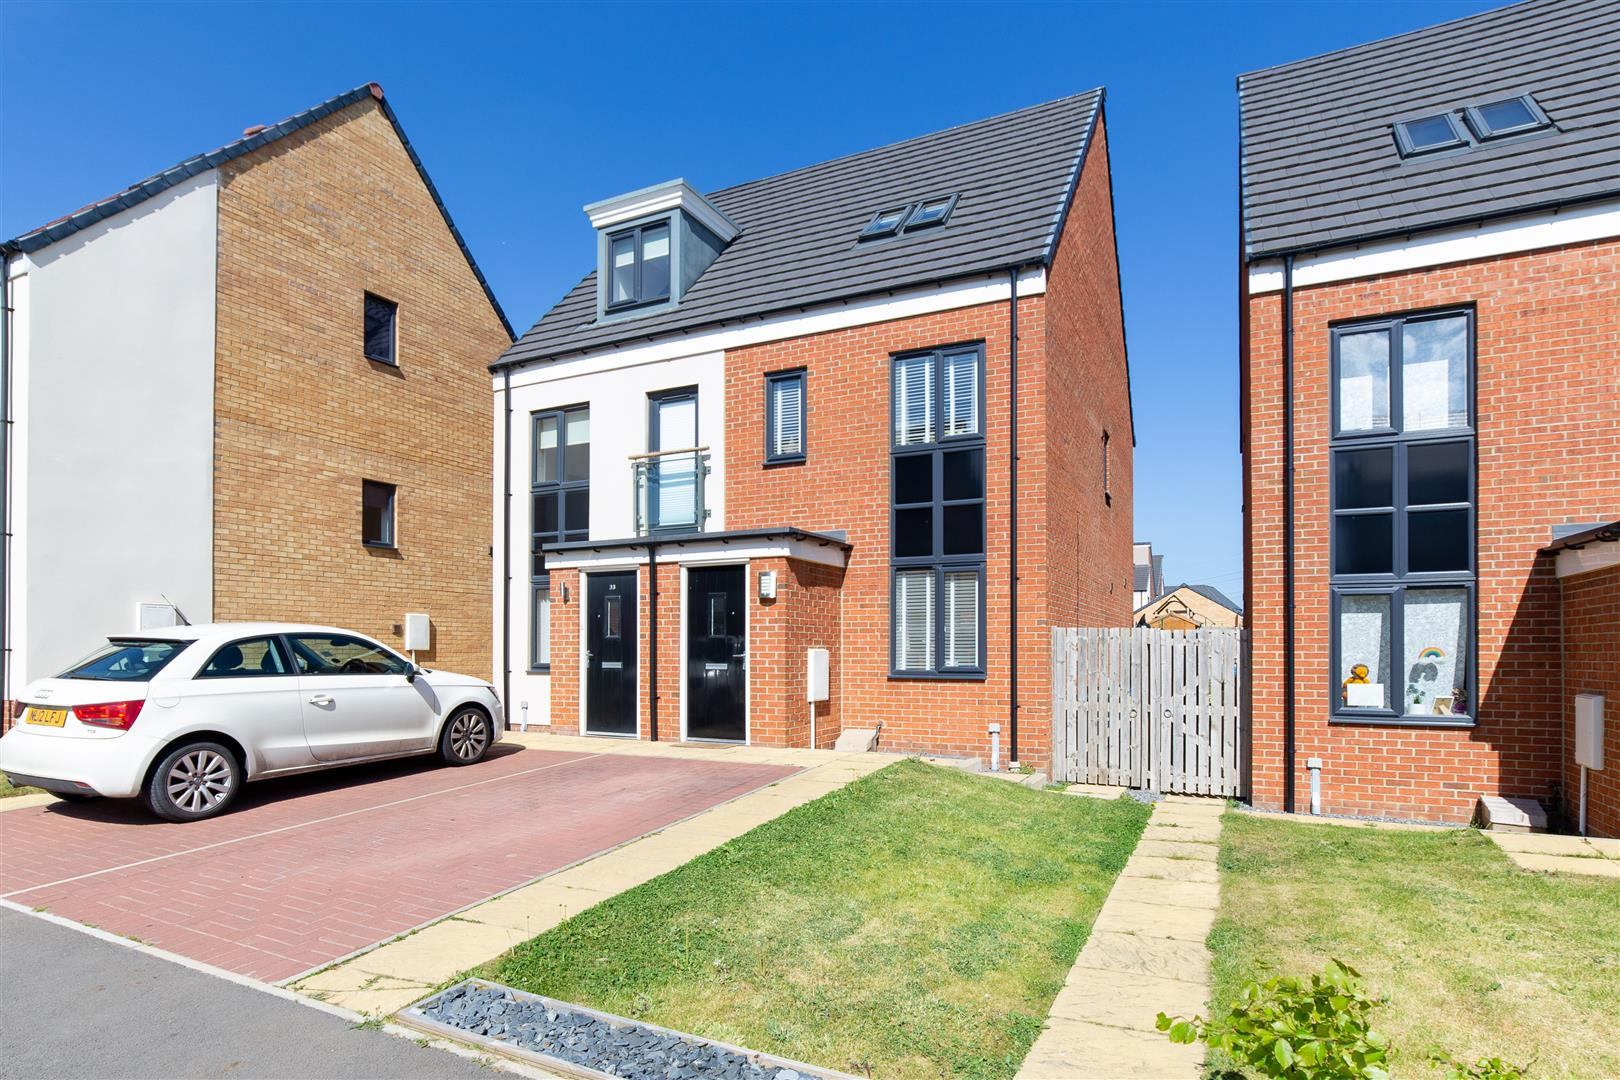 3 bed semi-detached house for sale in Newcastle upon Tyne, NE13 9BY  - Property Image 1